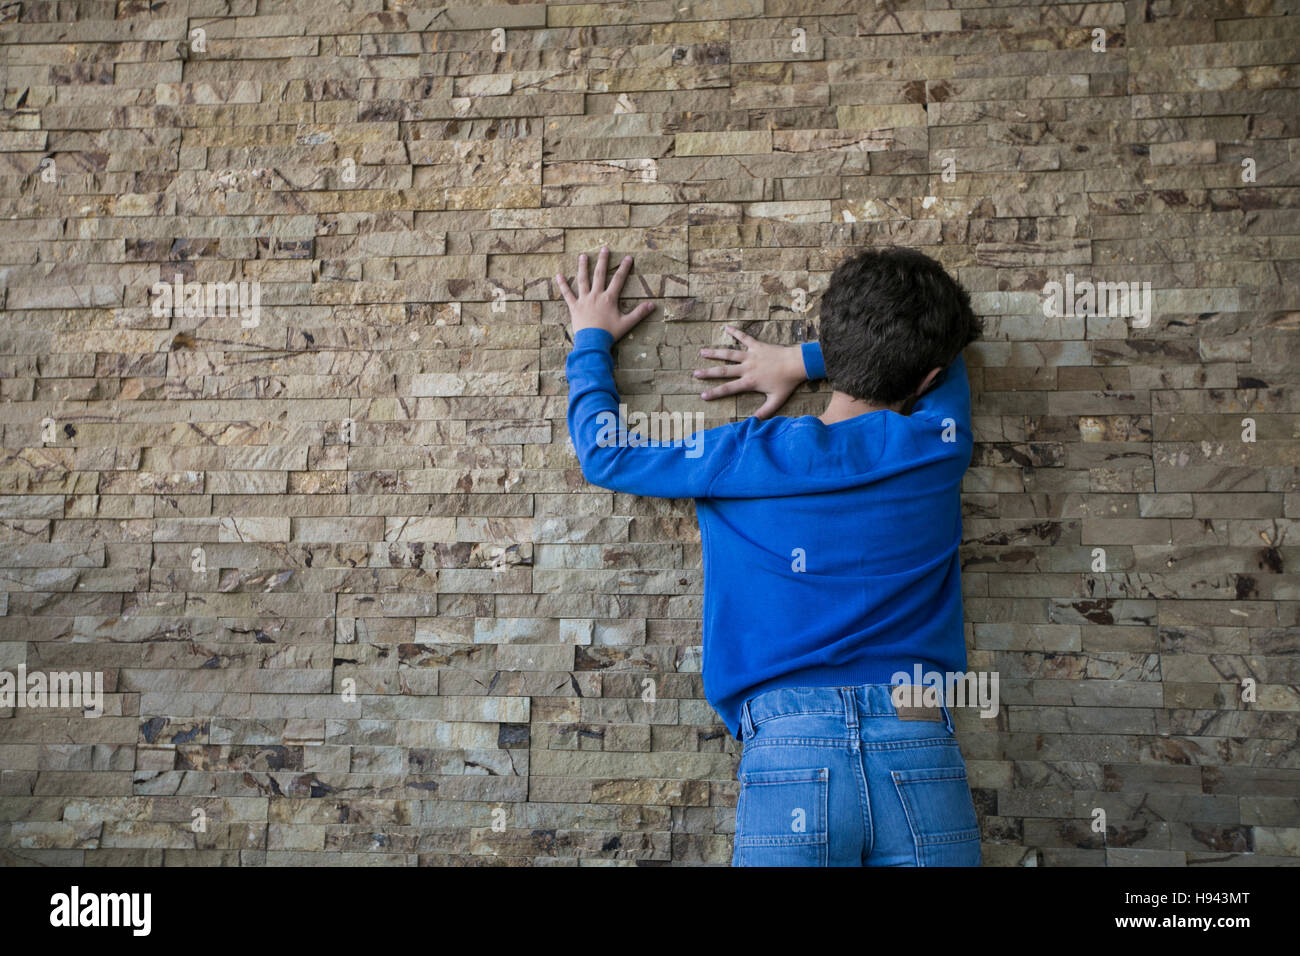 10 years old boy hiding face against the wall - Stock Image